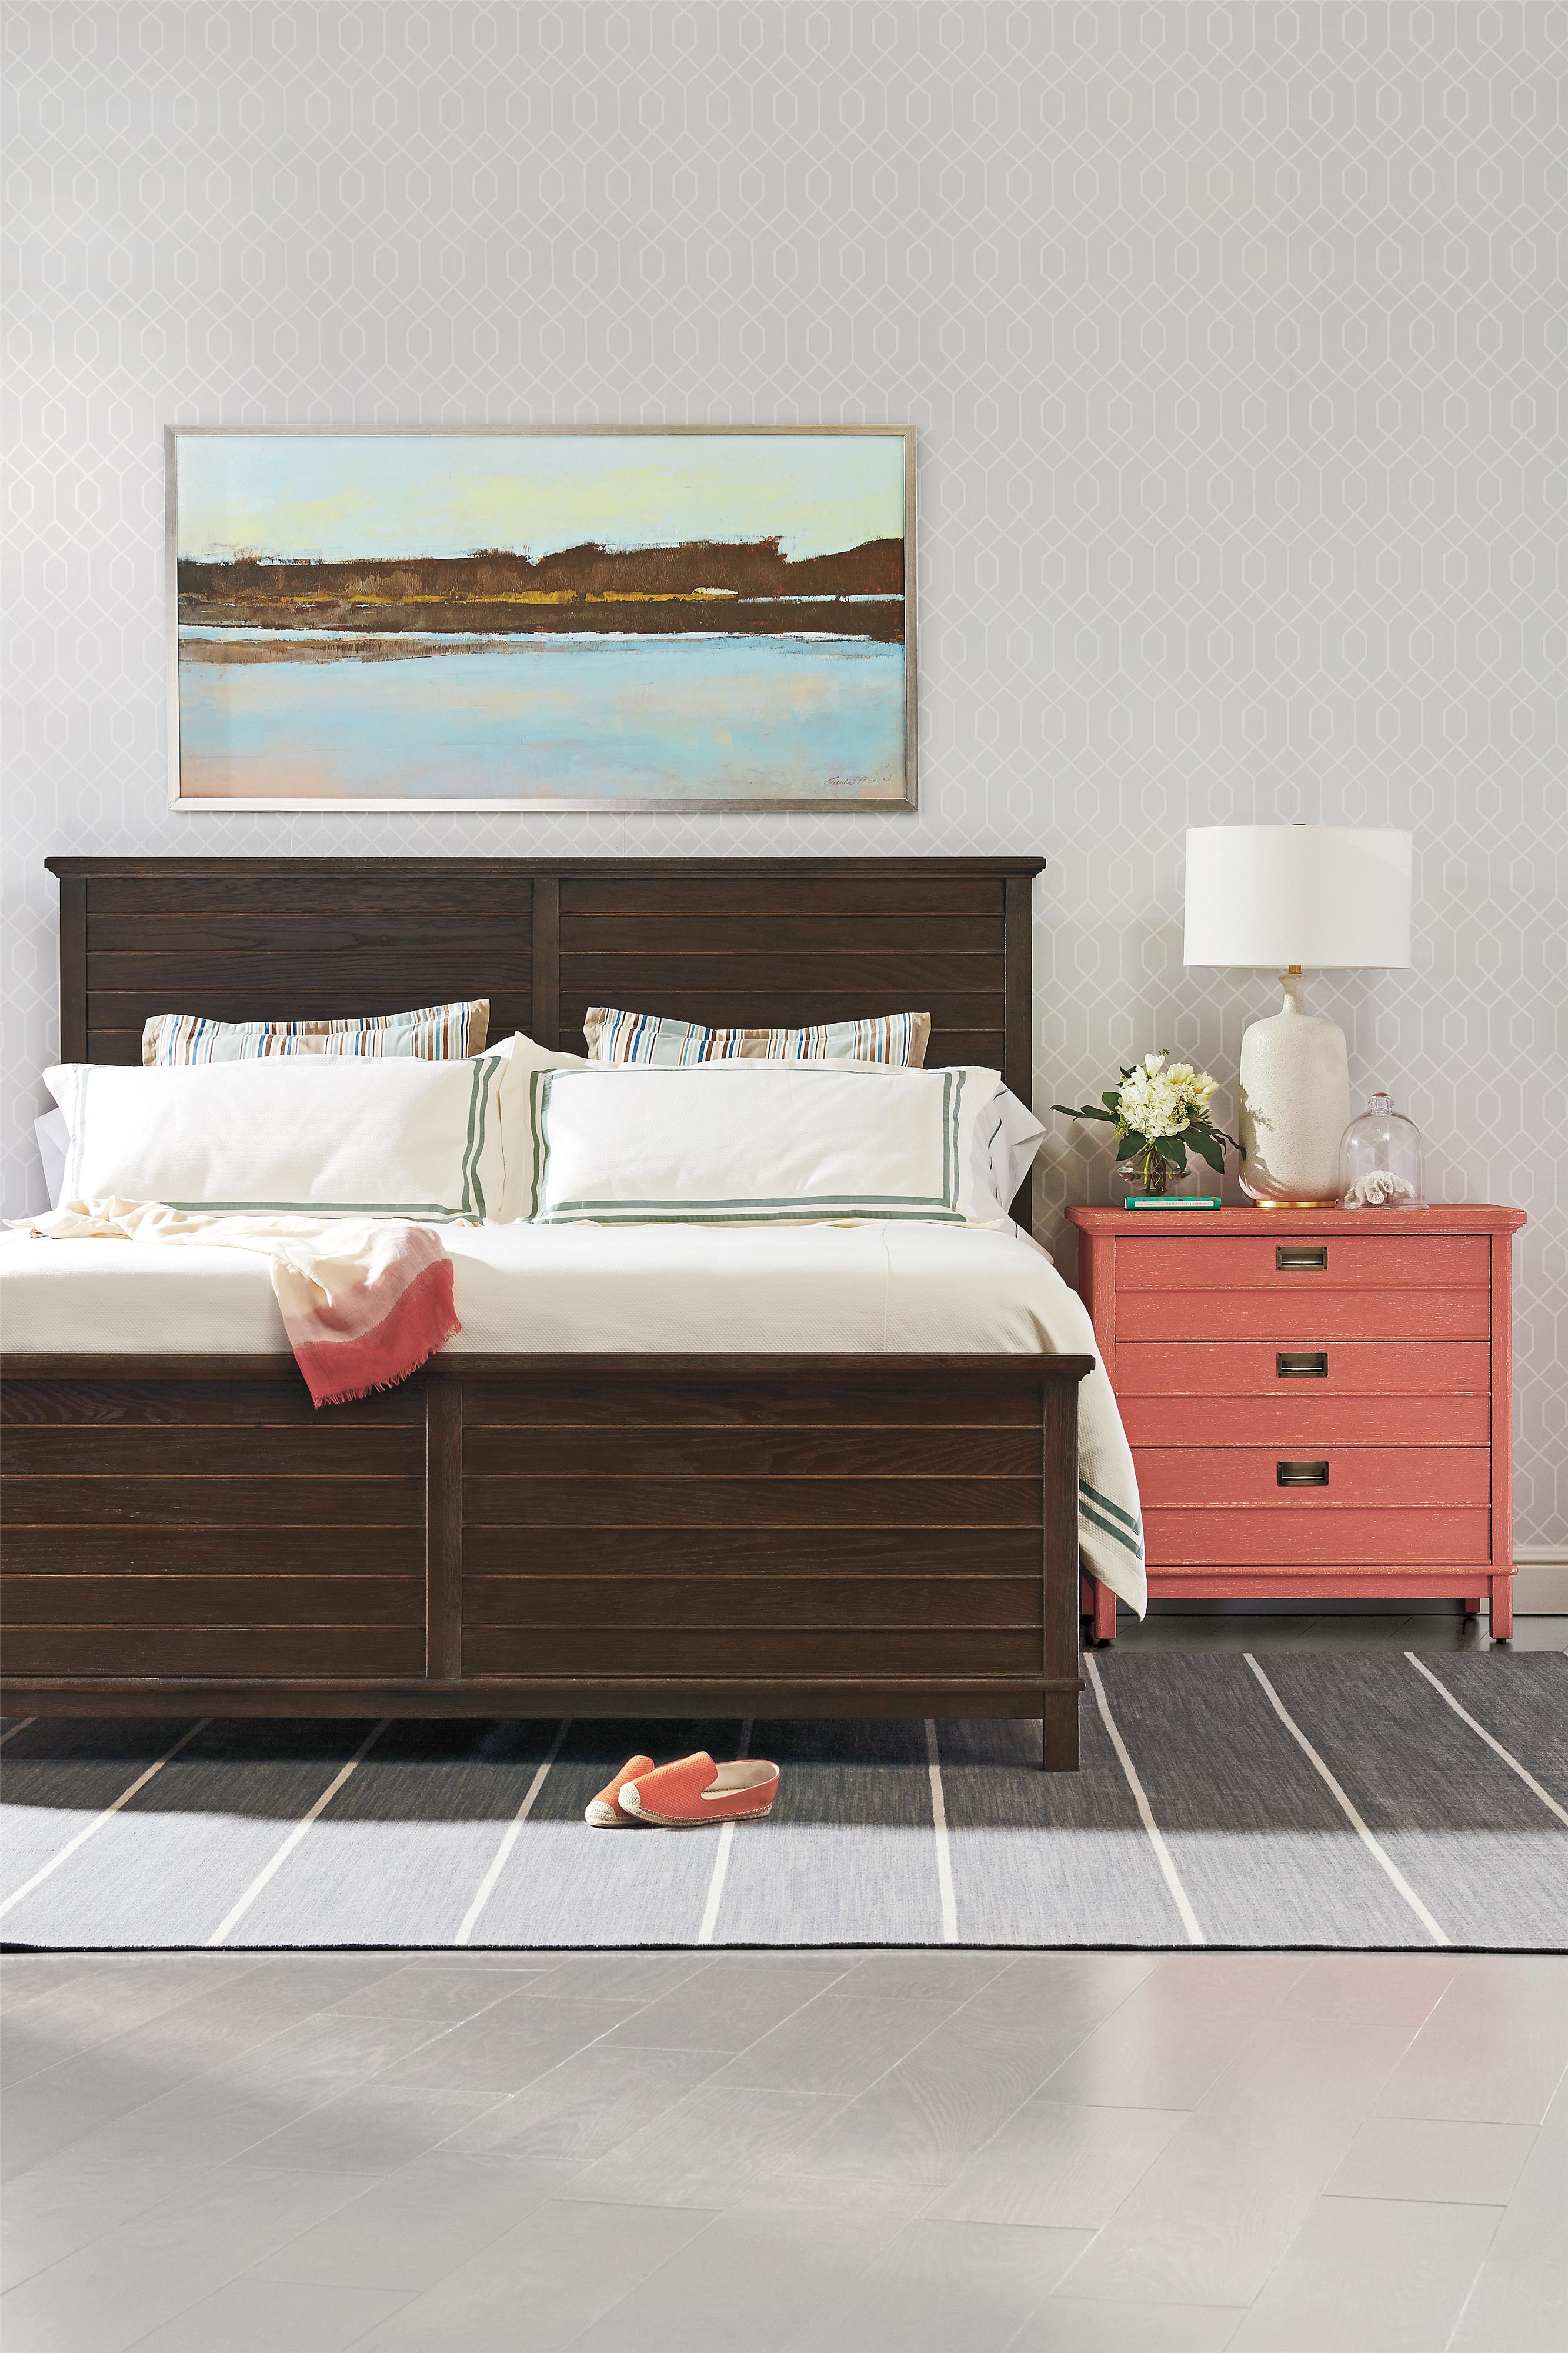 Stanley Furniture Coastal Living Resort King Bedroom Group - Item Number: 062-1 K Bedroom Group 1